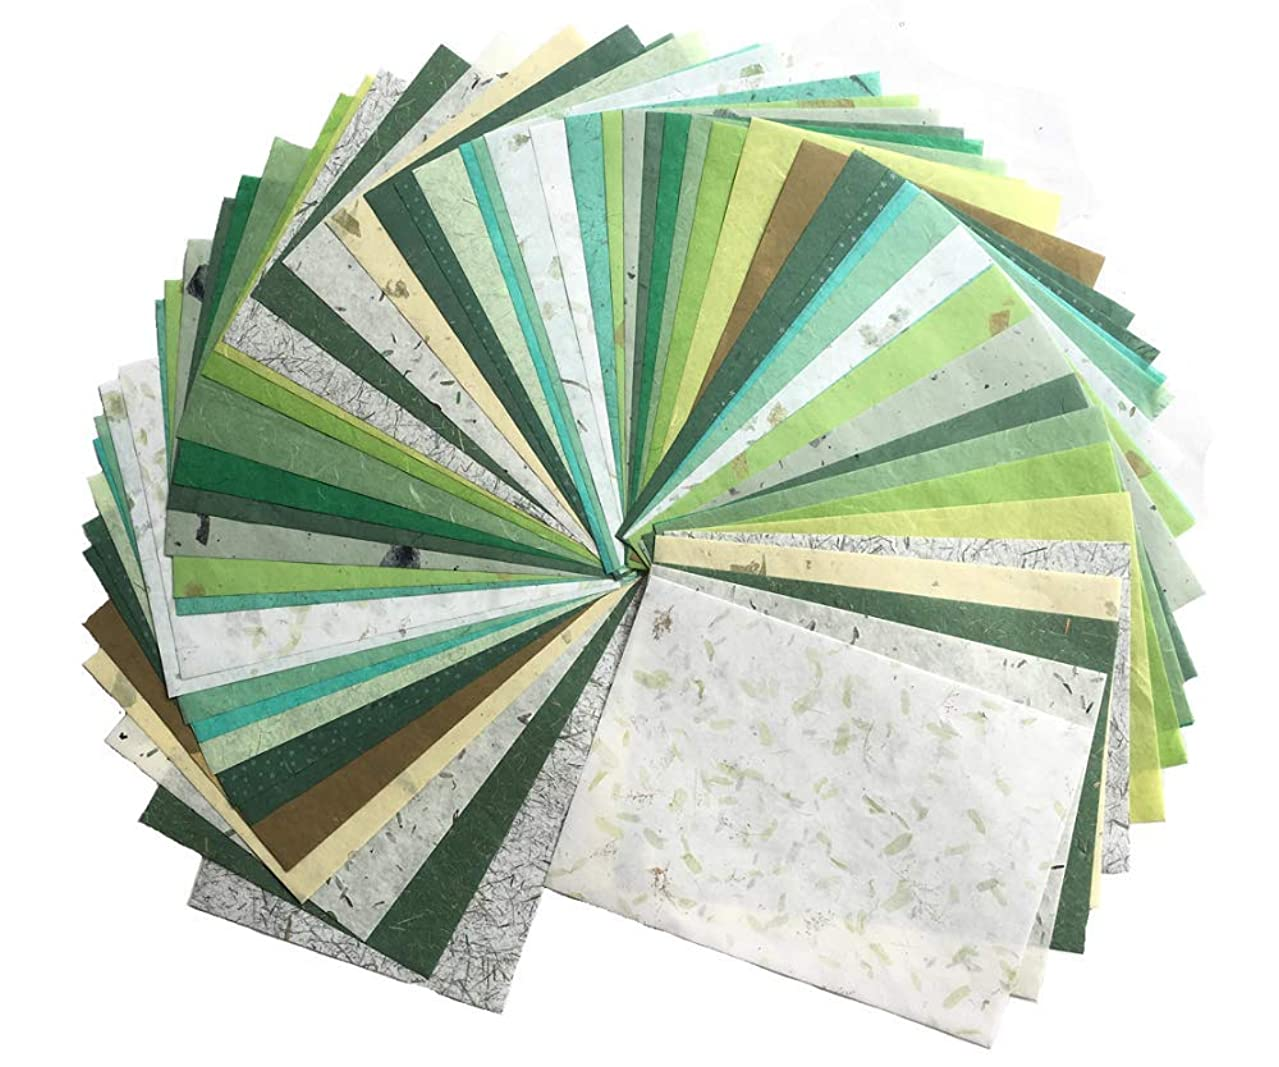 WADSUWAN SHOP 60 Sheets Mixed Green A4 Mulberry Paper Sheet Design Craft Hand Made Art Tissue Japan Origami Washi Wholesale Bulk Sale Unryu Suppliers Thailand Products Card Making